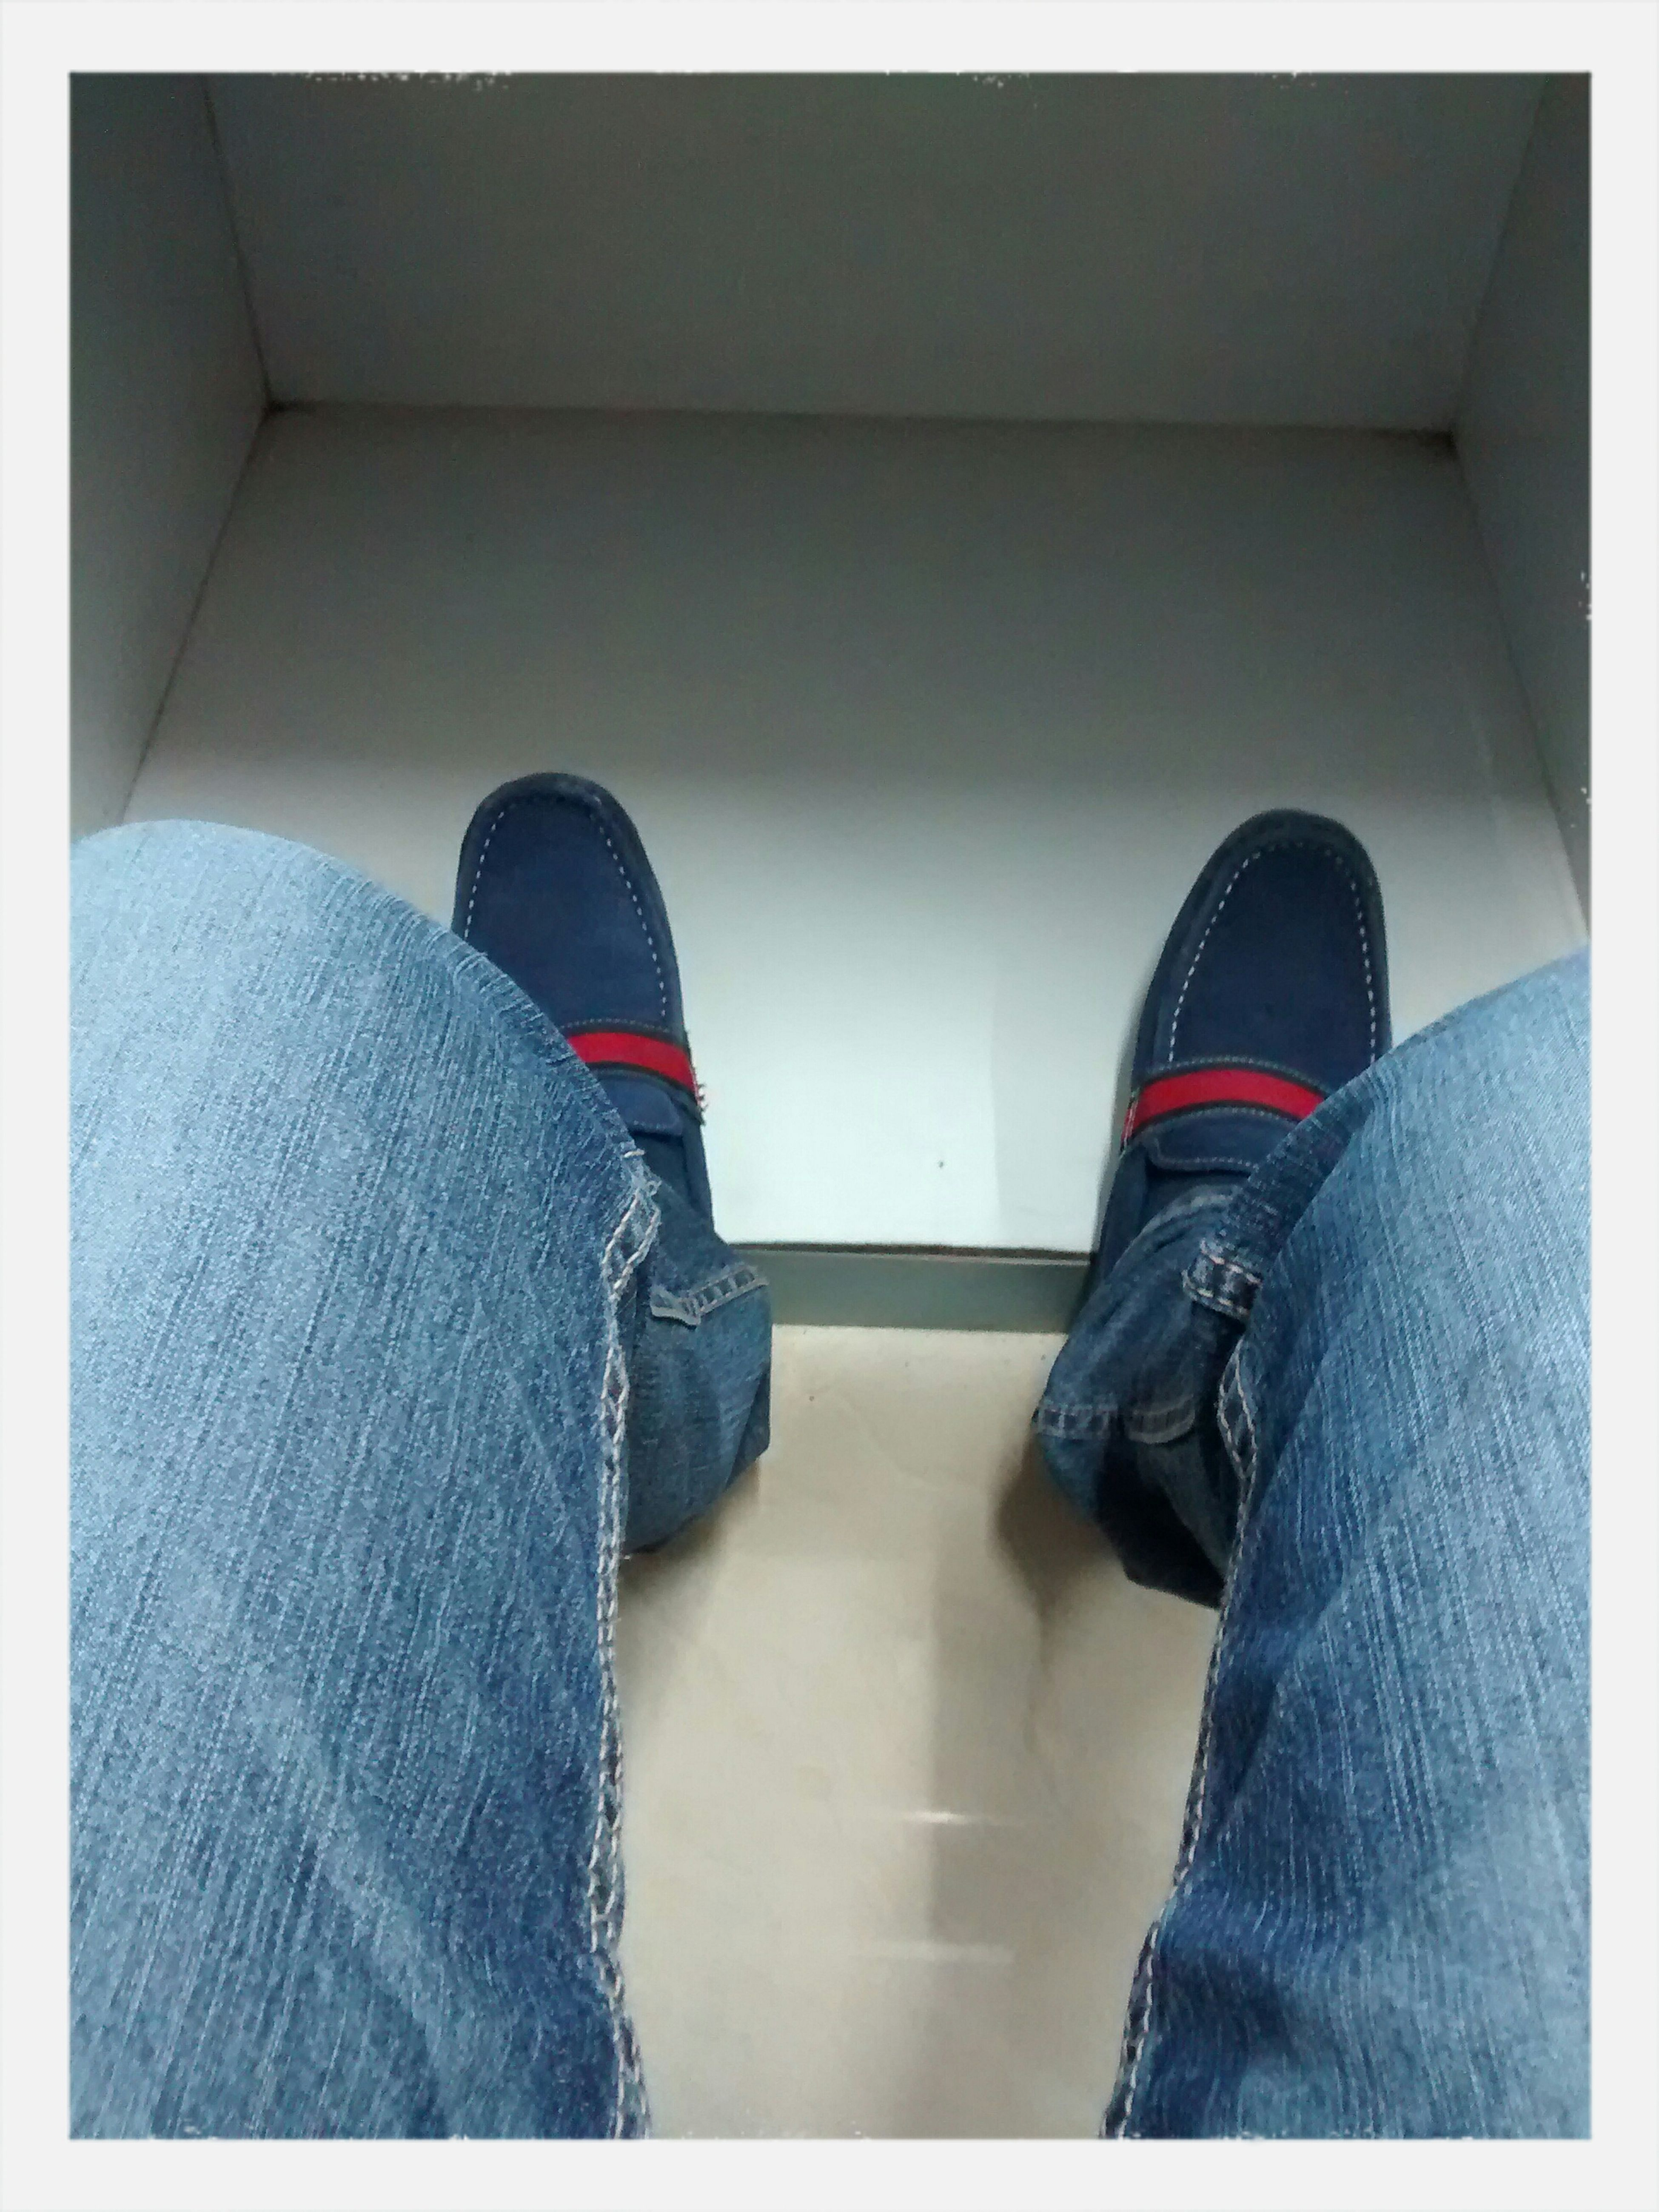 Jeans Blue Jeans Loafers Blue Loafers